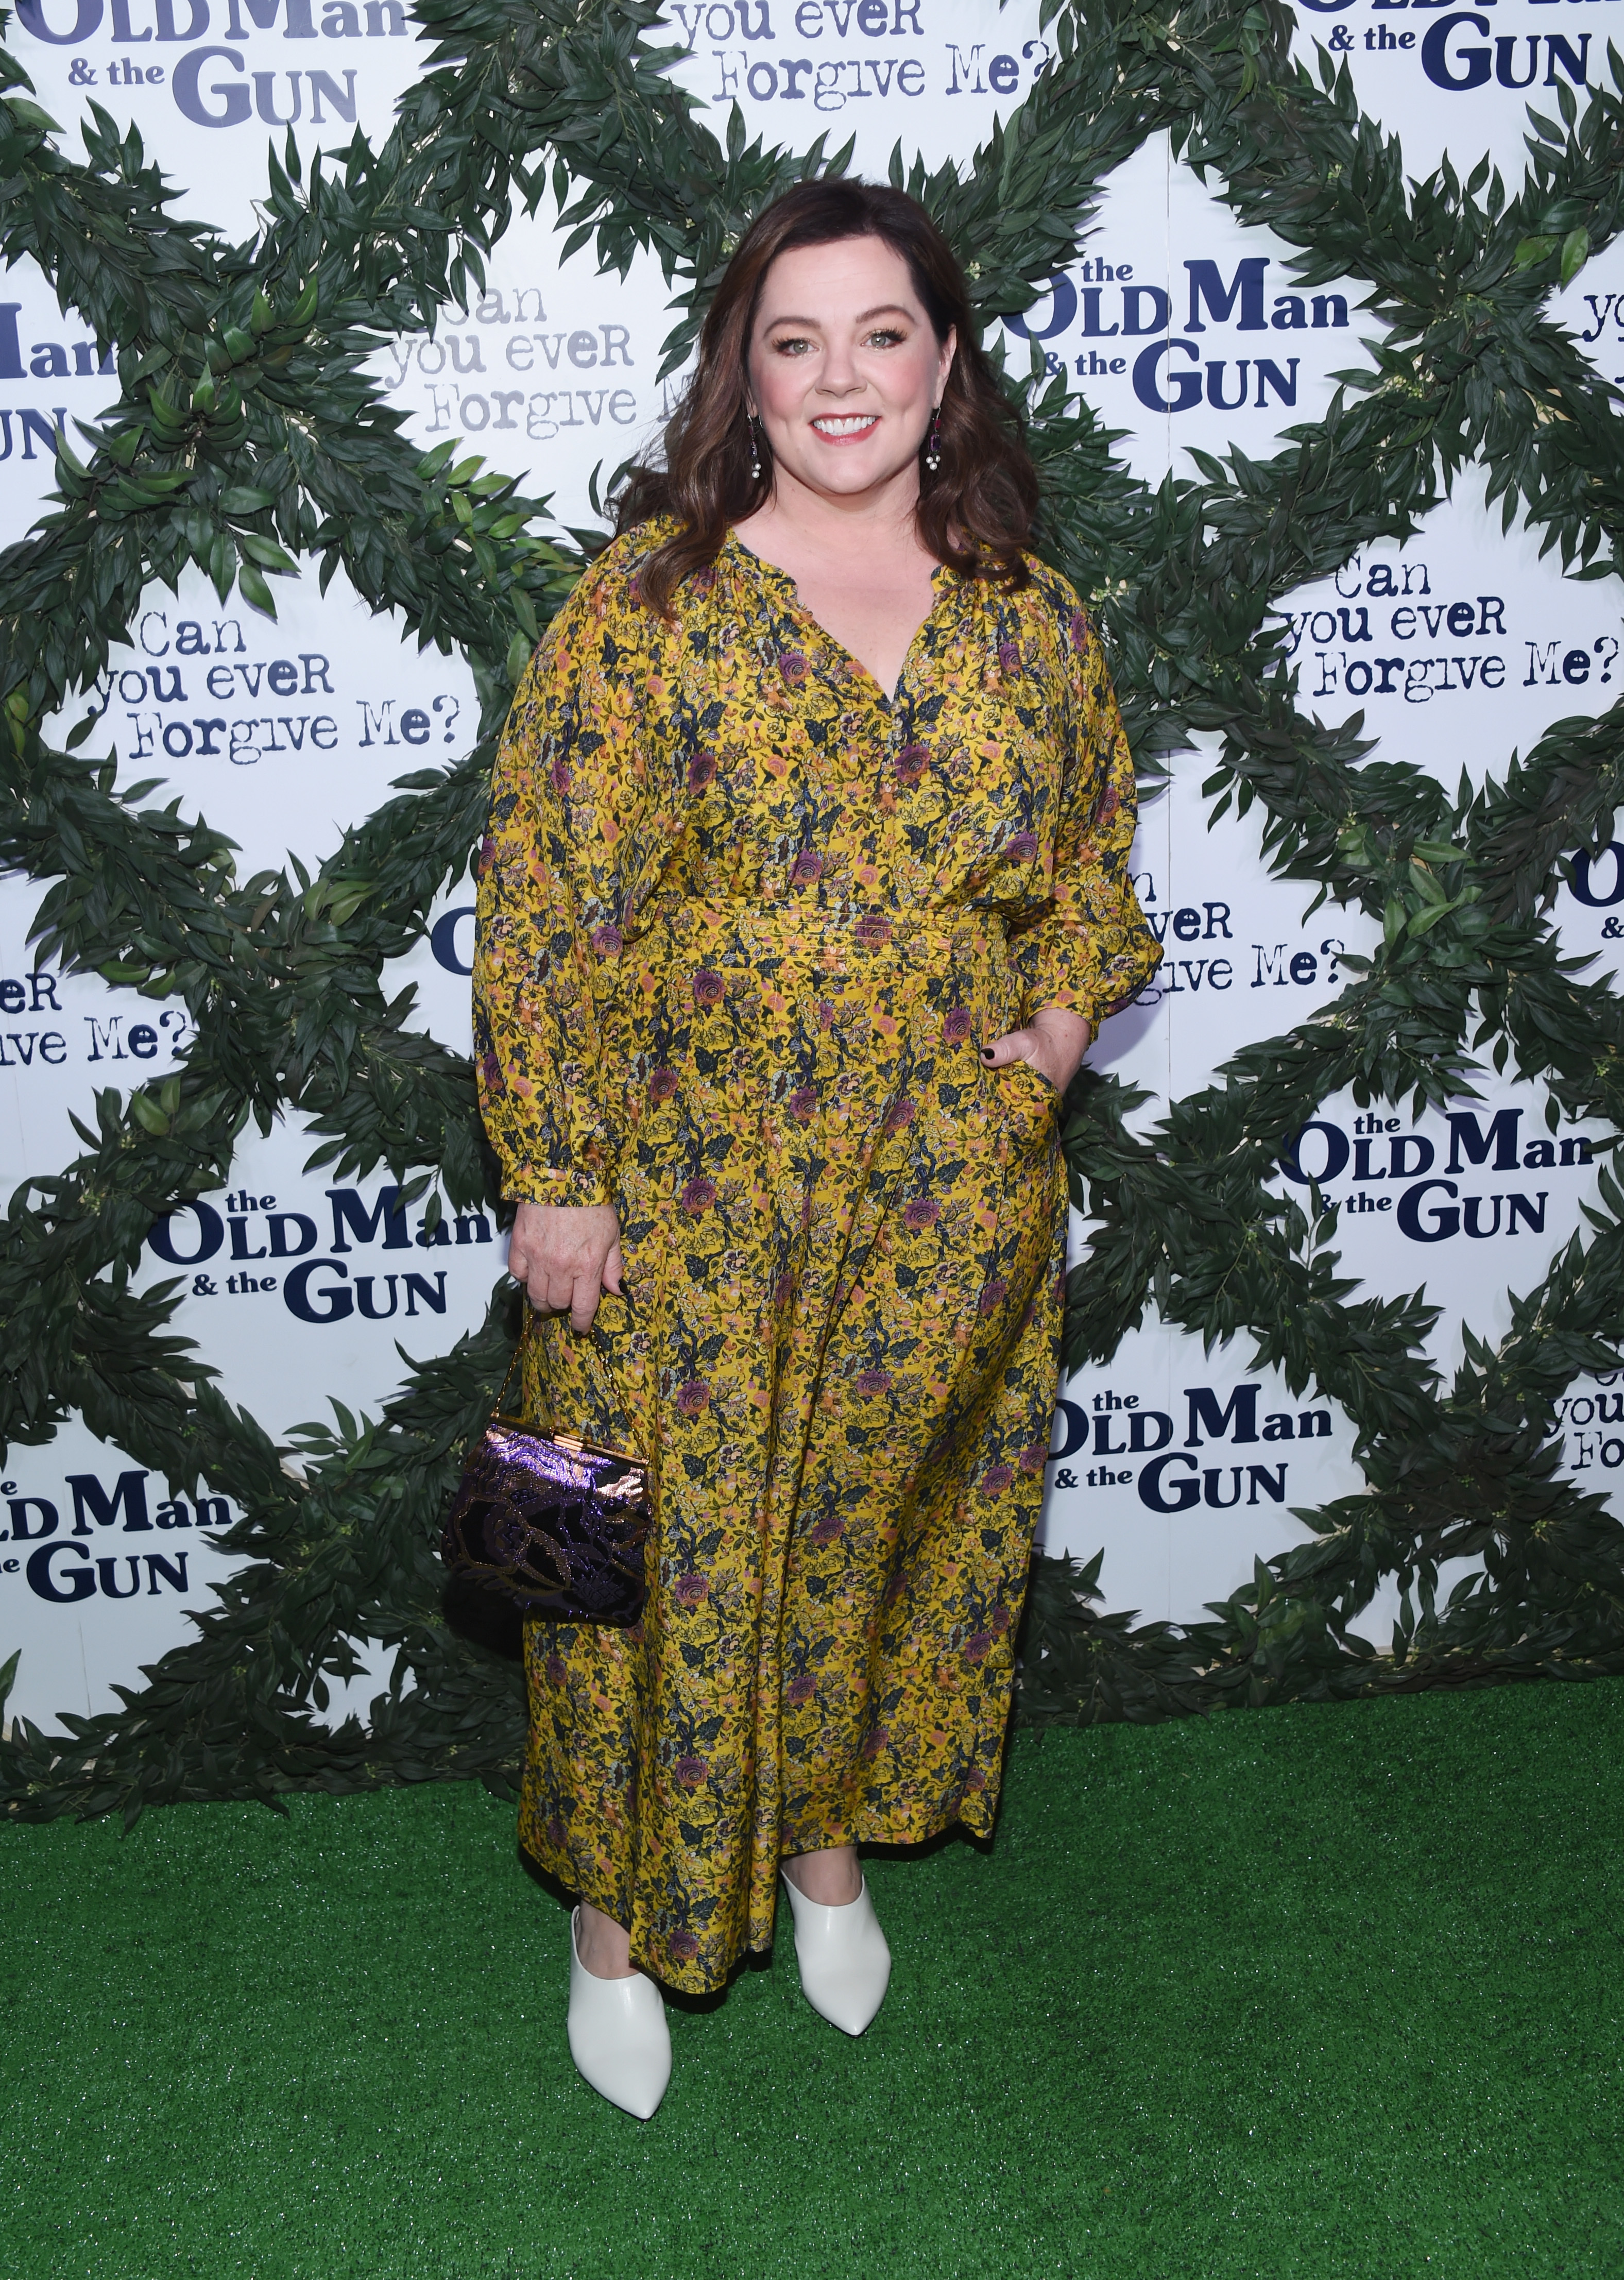 Melissa McCarthy arrives at the Fox Searchlight TIFF Party during the 2018 Toronto International Film Festival at the Four Seasons Centre For The Performing Arts in Toronto on Sept. 9, 2018.